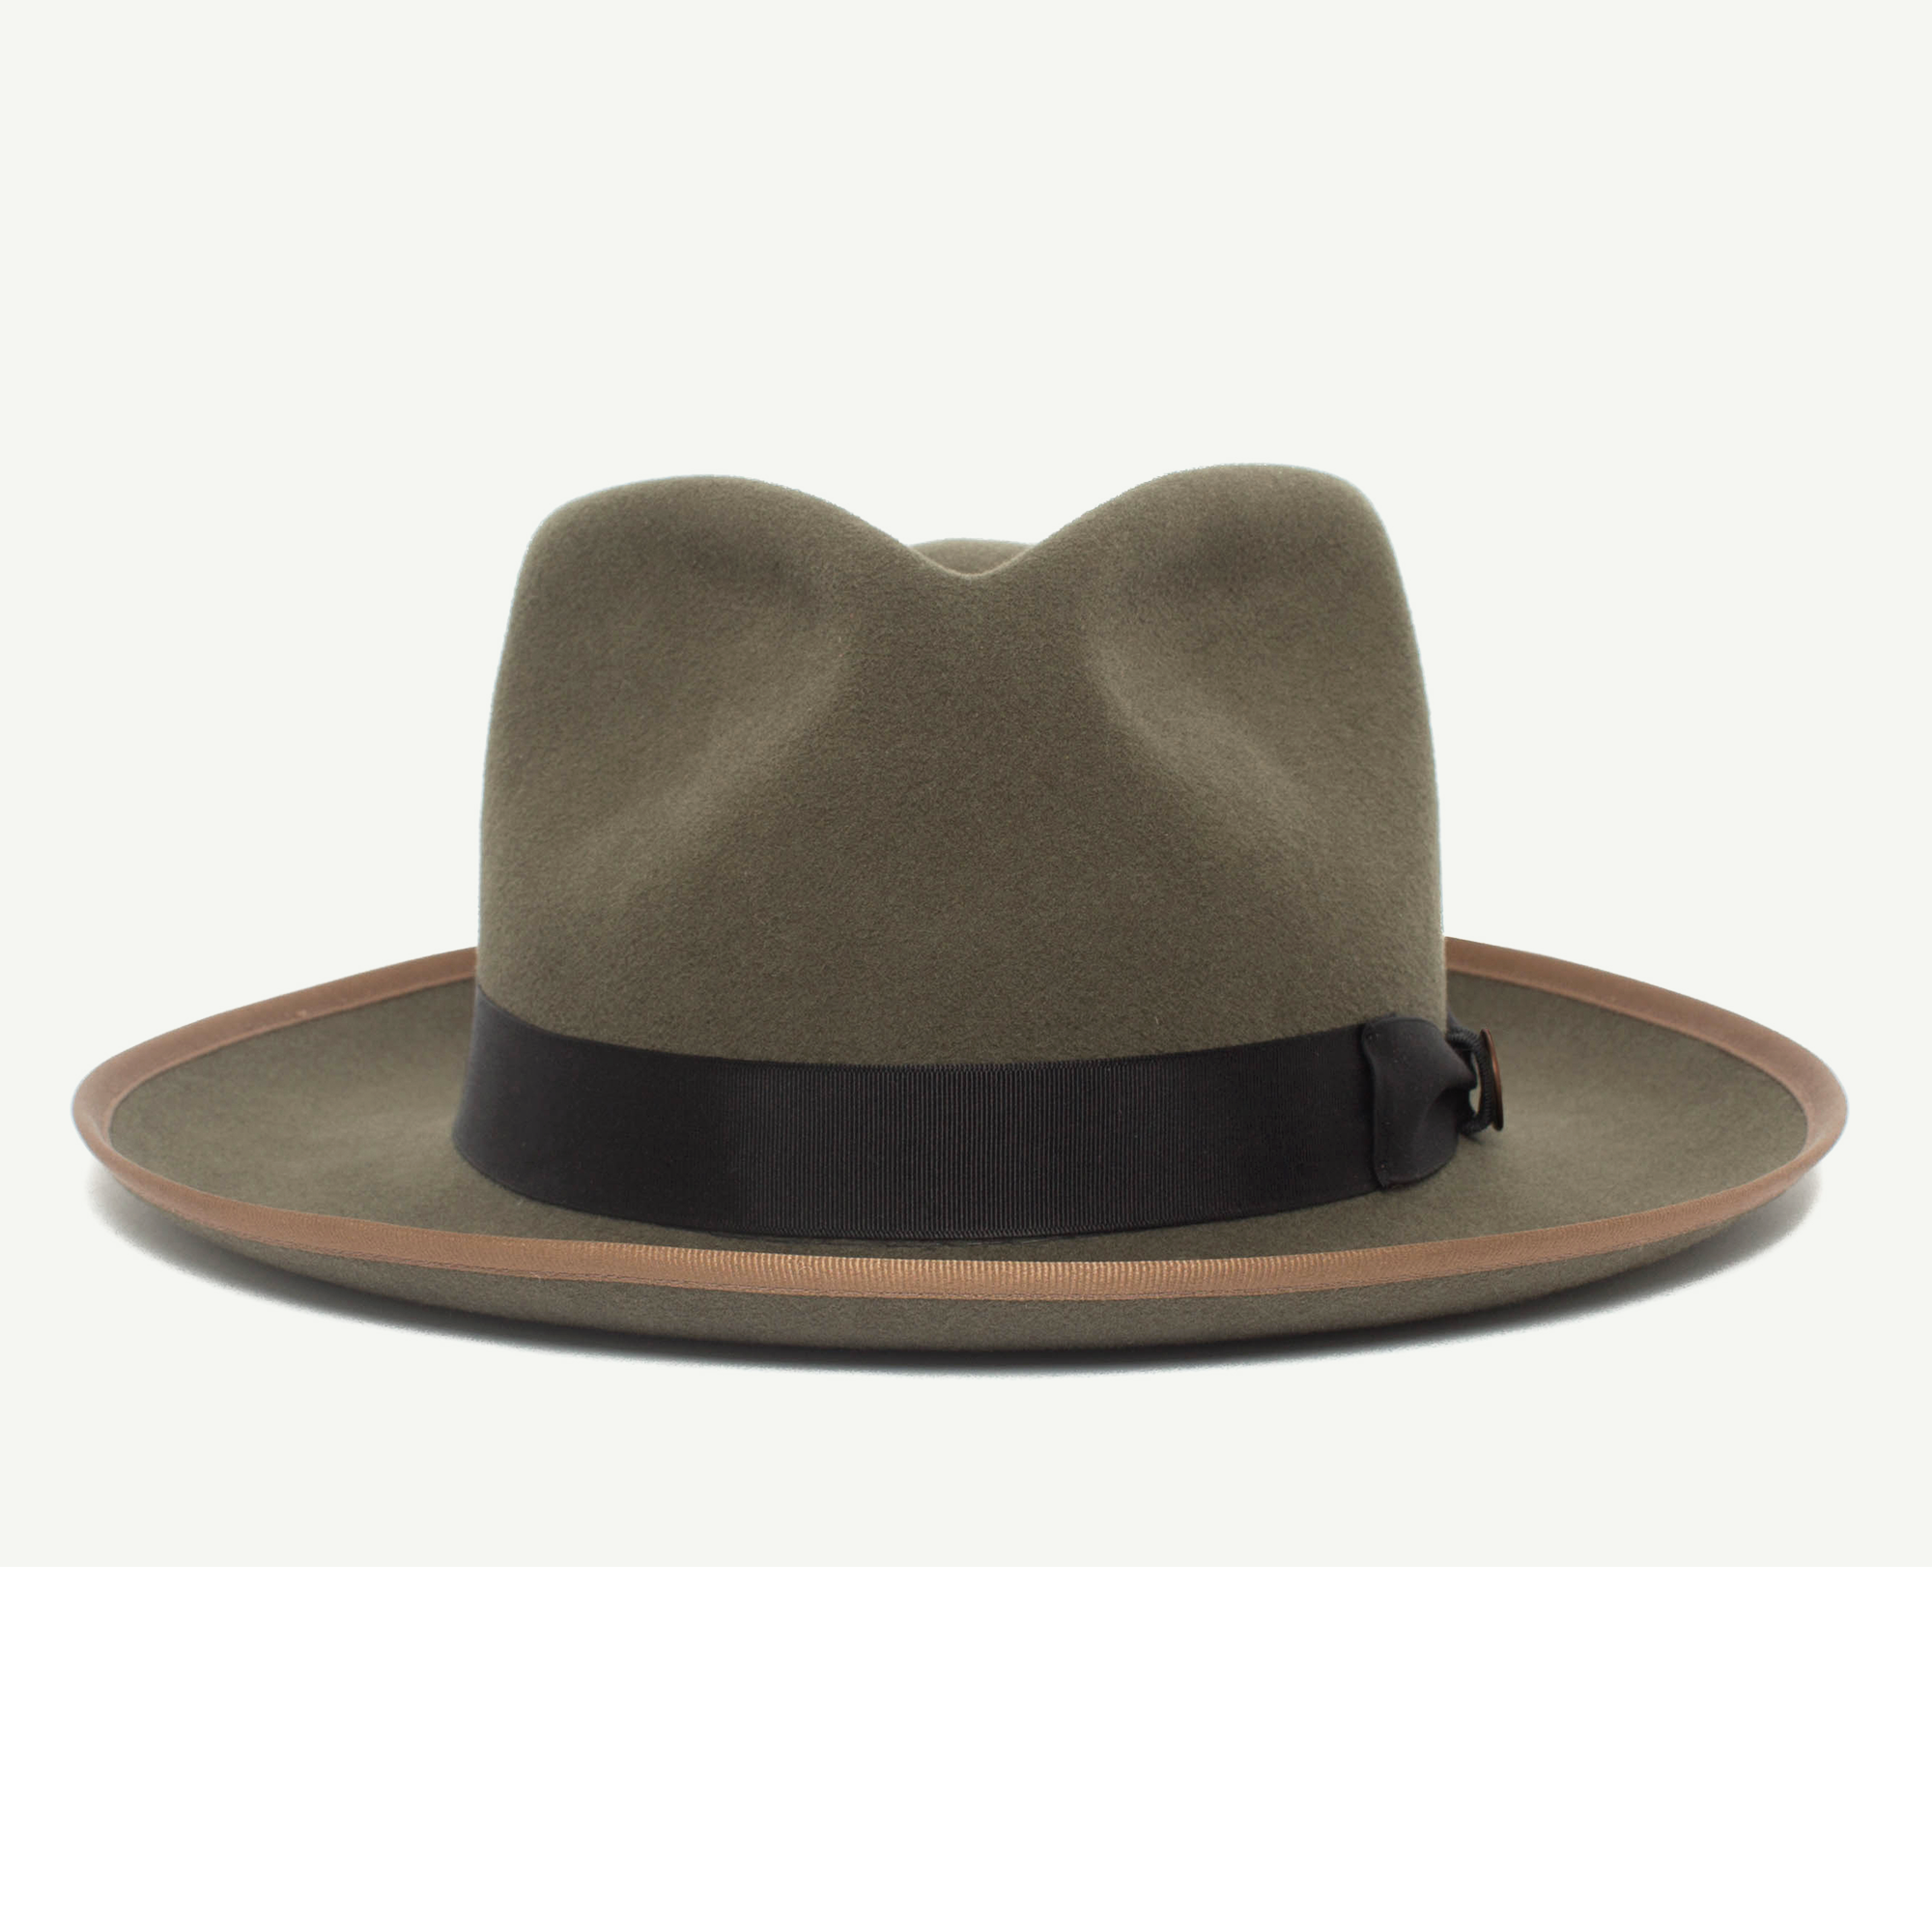 78d45f37bc90ea River Gray wool wide brim fedora hat with 2 3/4